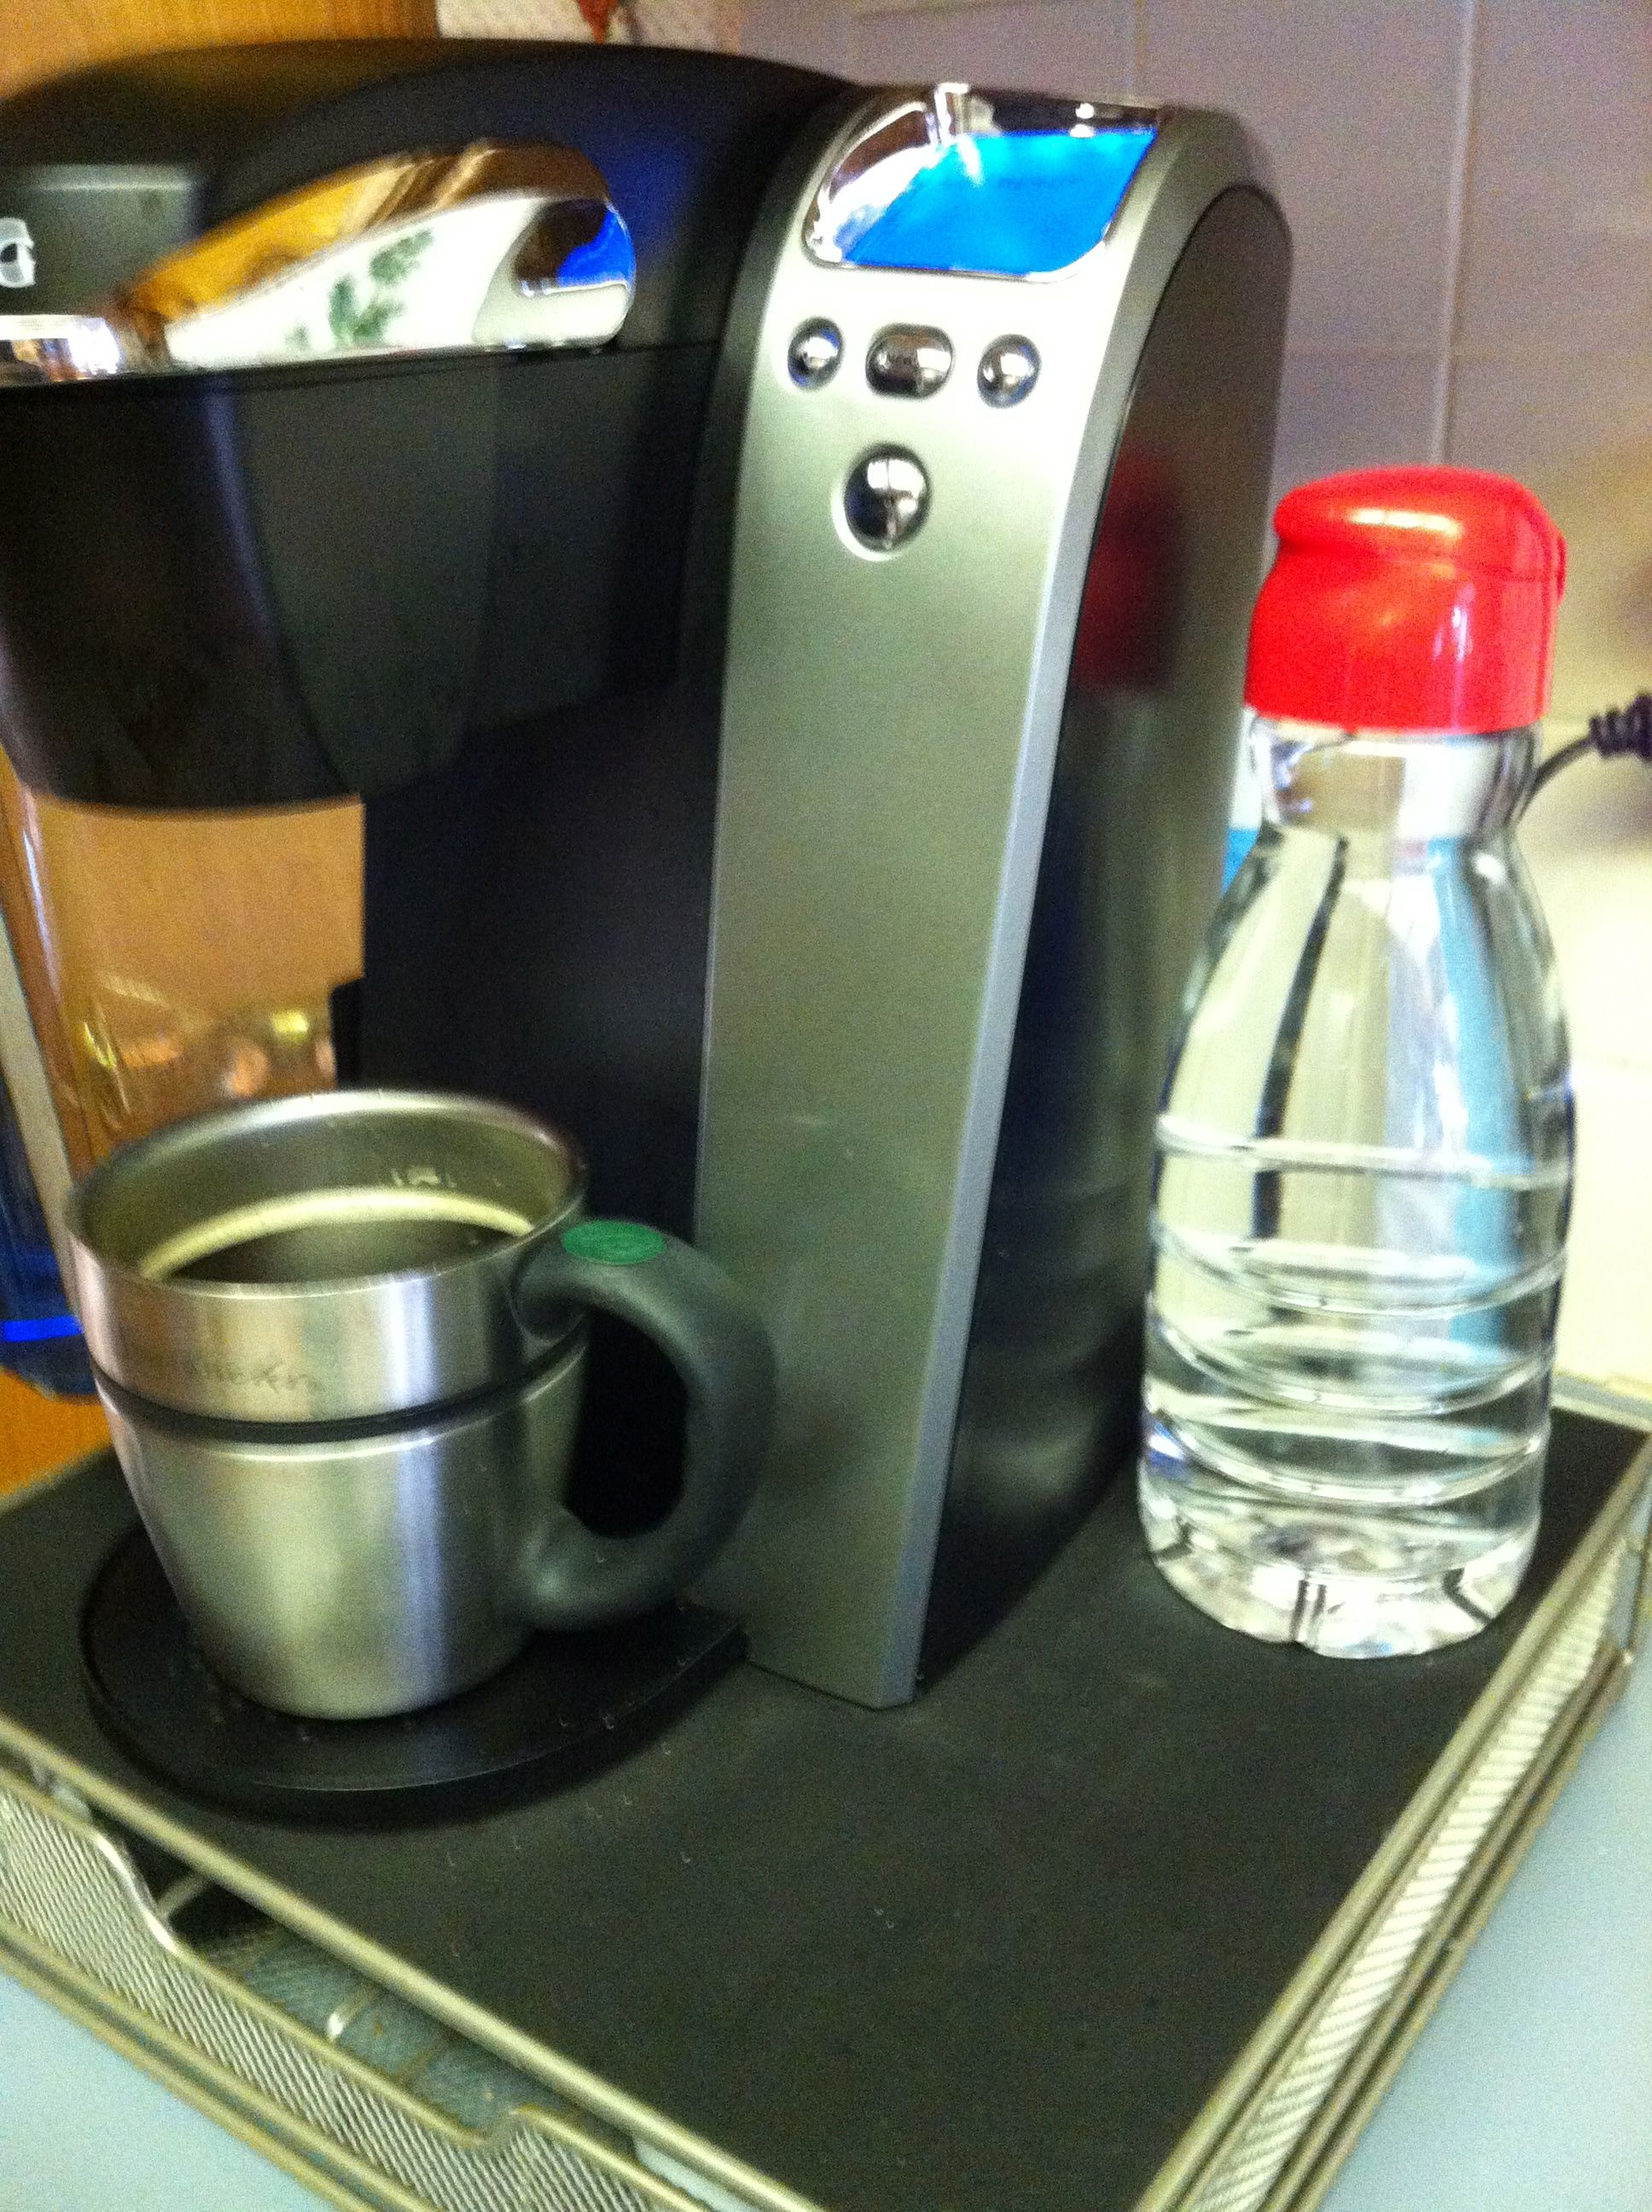 Reuse the empty coffee creamer bottle to hold water for refilling the Keurig reservoir. It sits ...